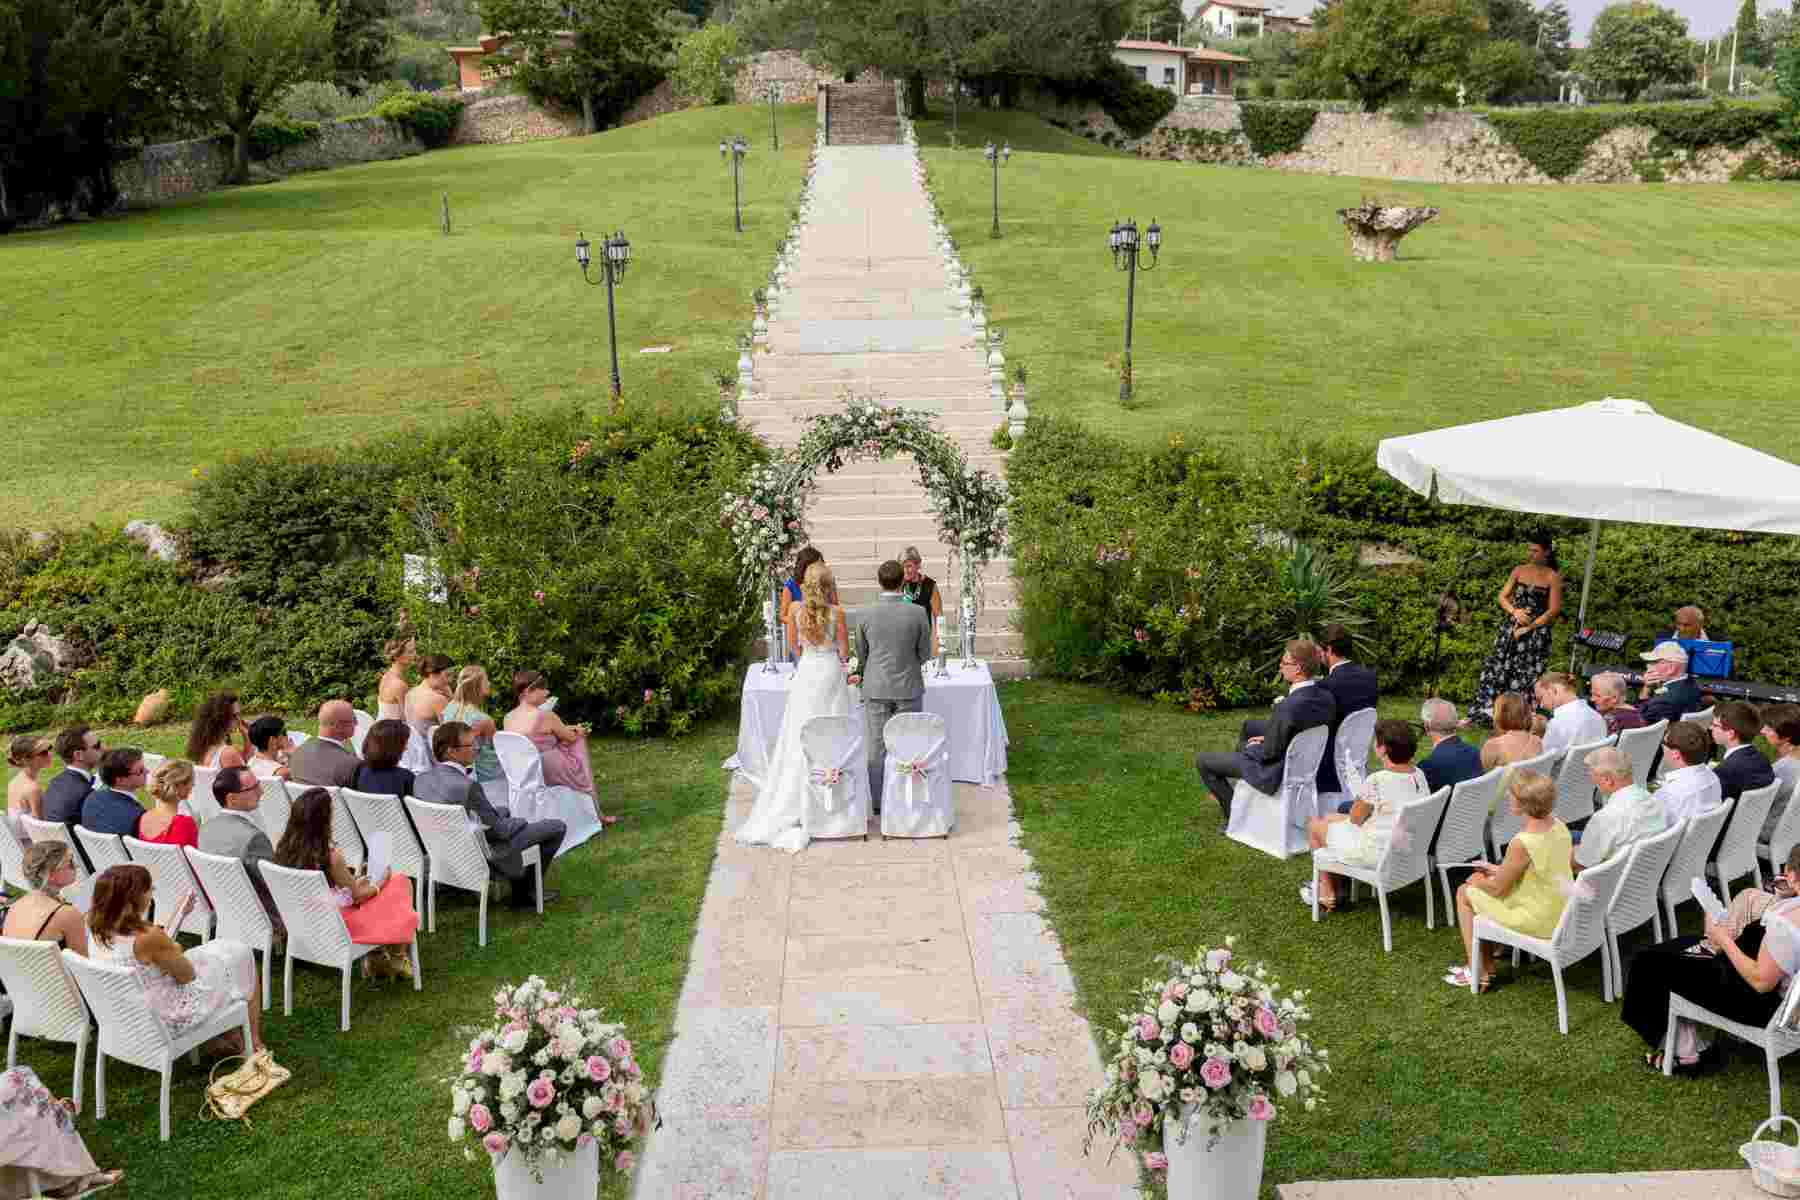 Romantic Wedding Ceremony in the Park  Wedding Package